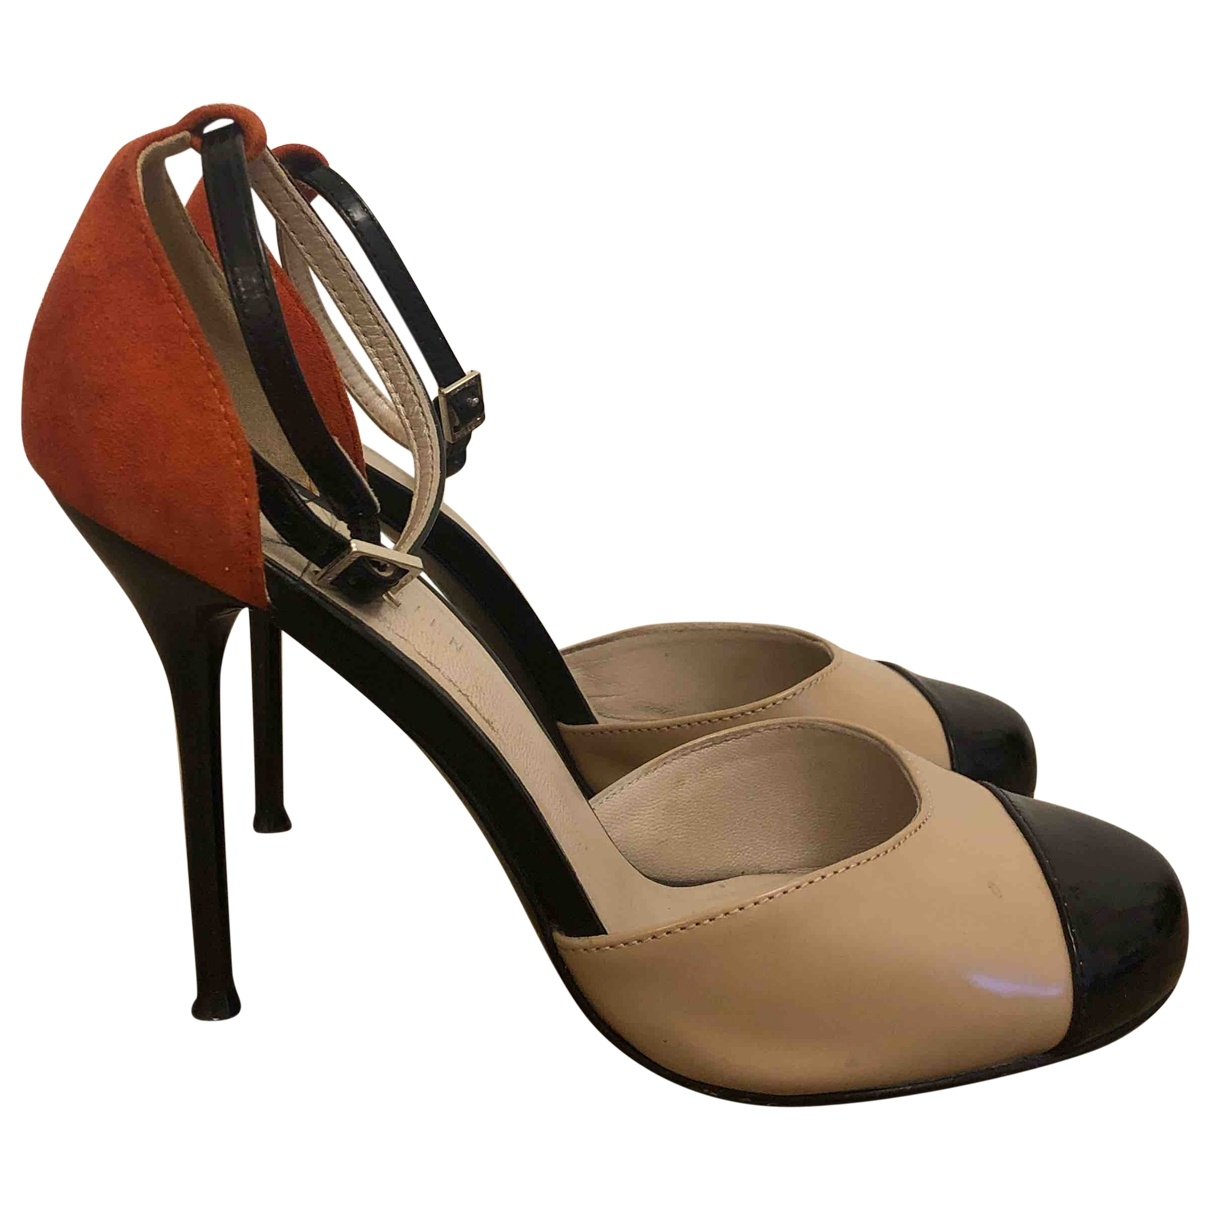 Karen Millen \N Pumps in  Beige Leder